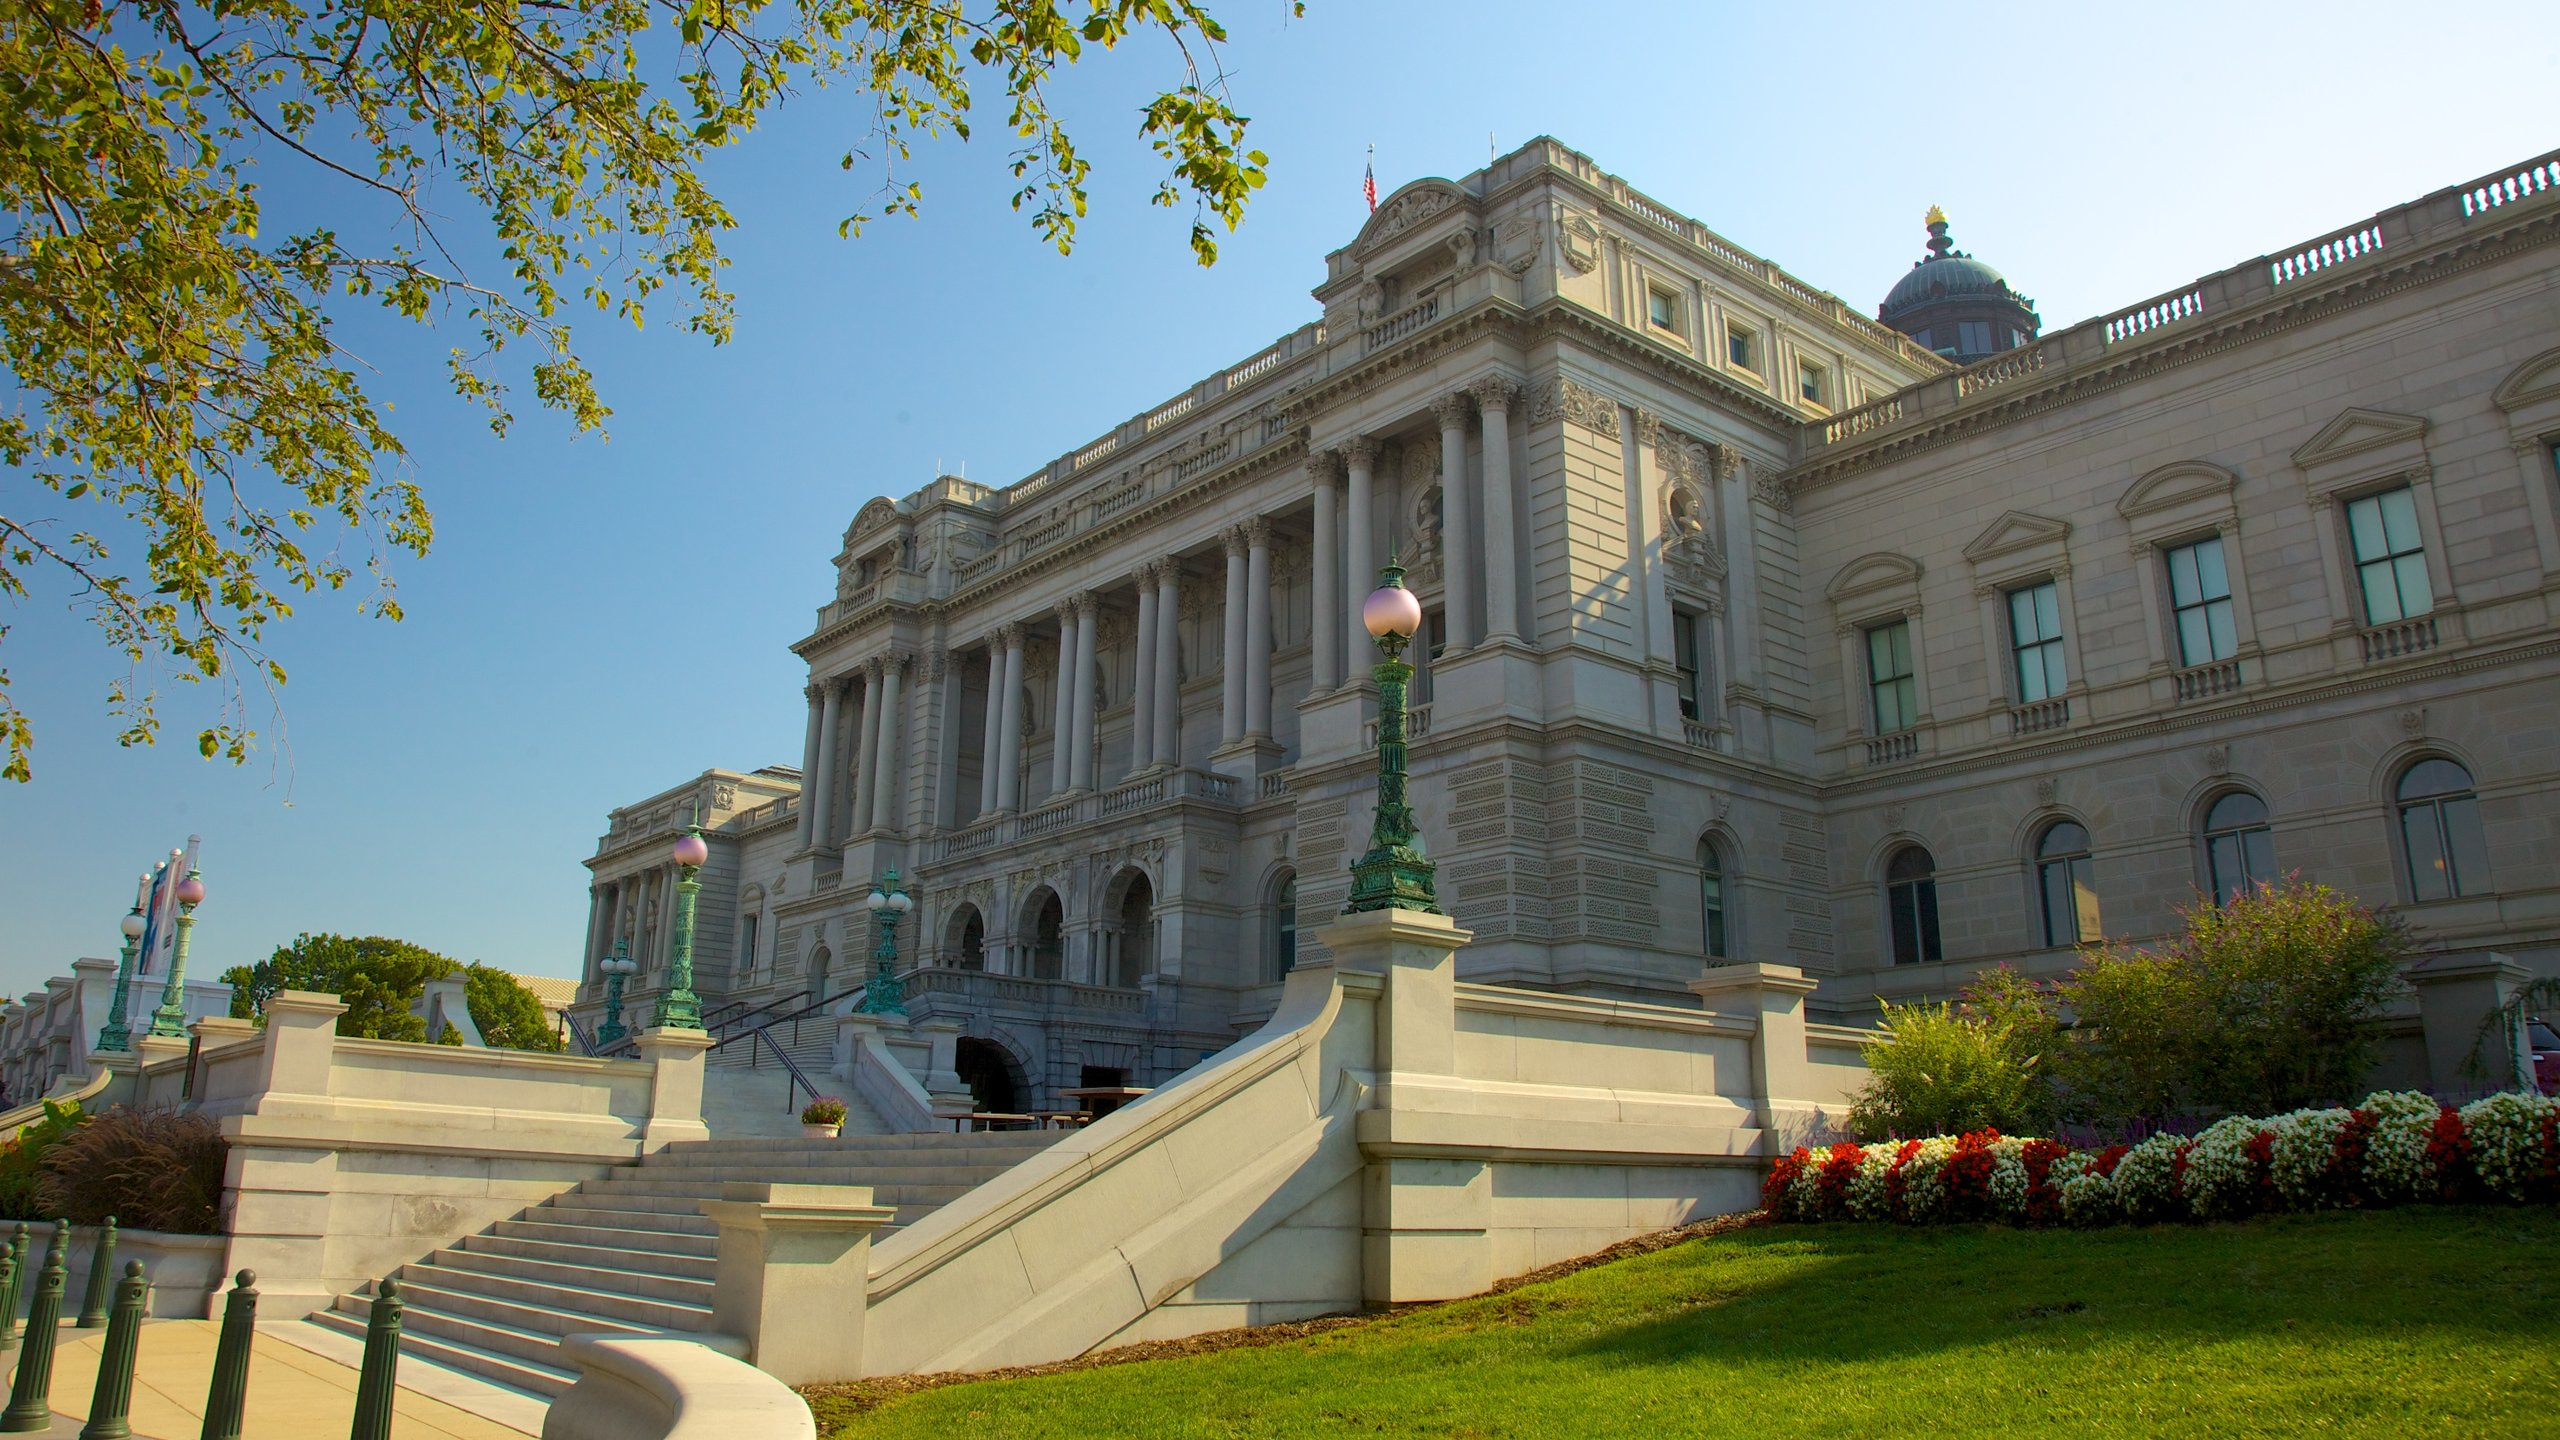 Library of Congress, Washington, District of Columbia, United States of America